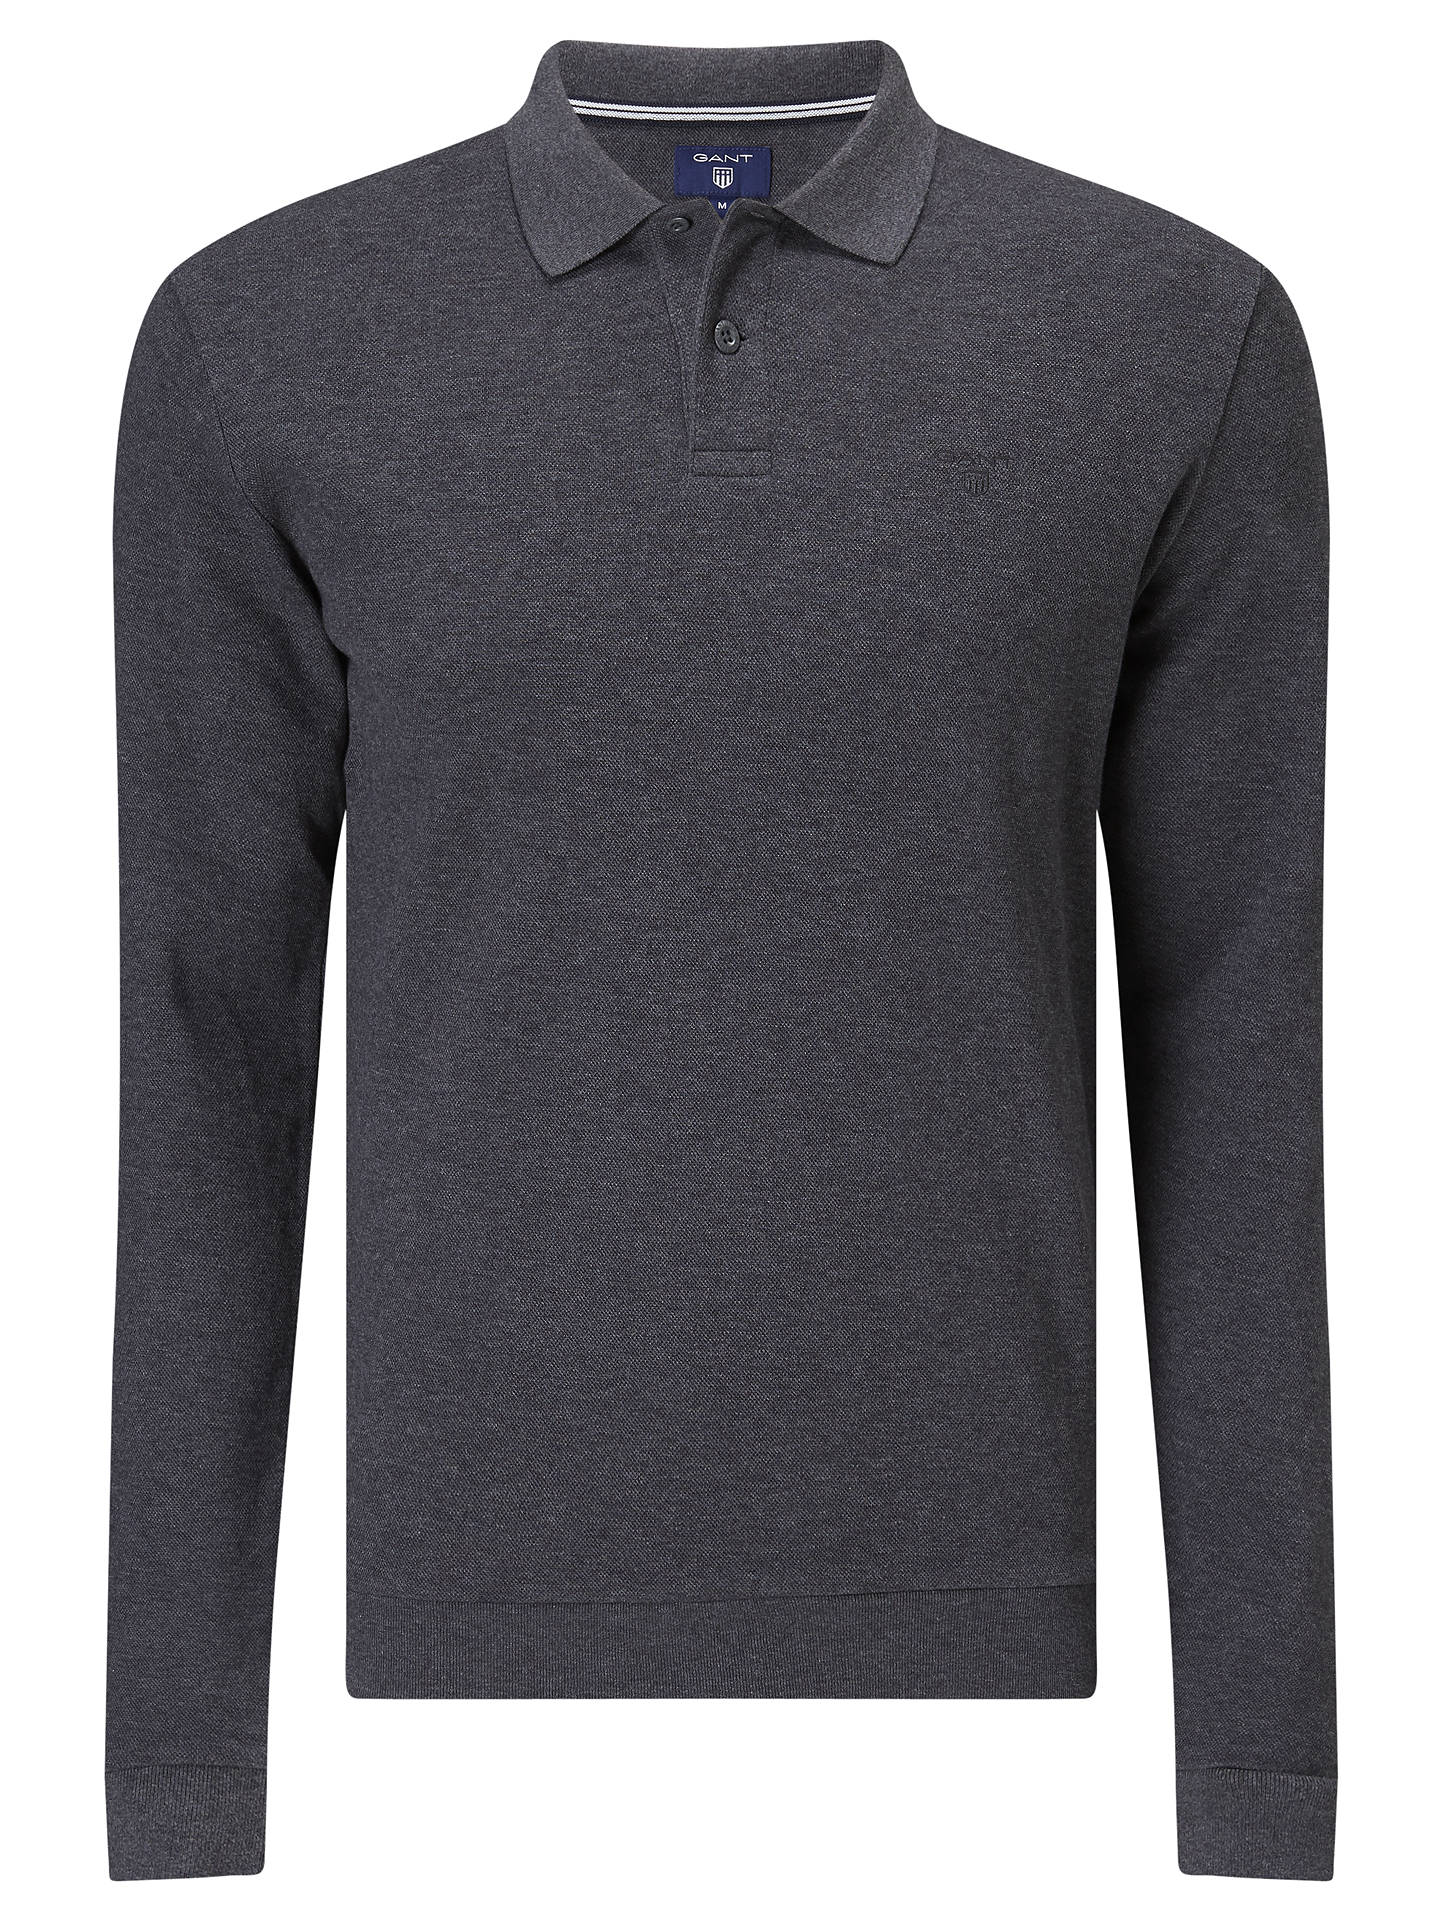 304e6c21356 Buy Gant Smart Long Sleeve Polo Top, Charcoal, S Online at johnlewis.com ...